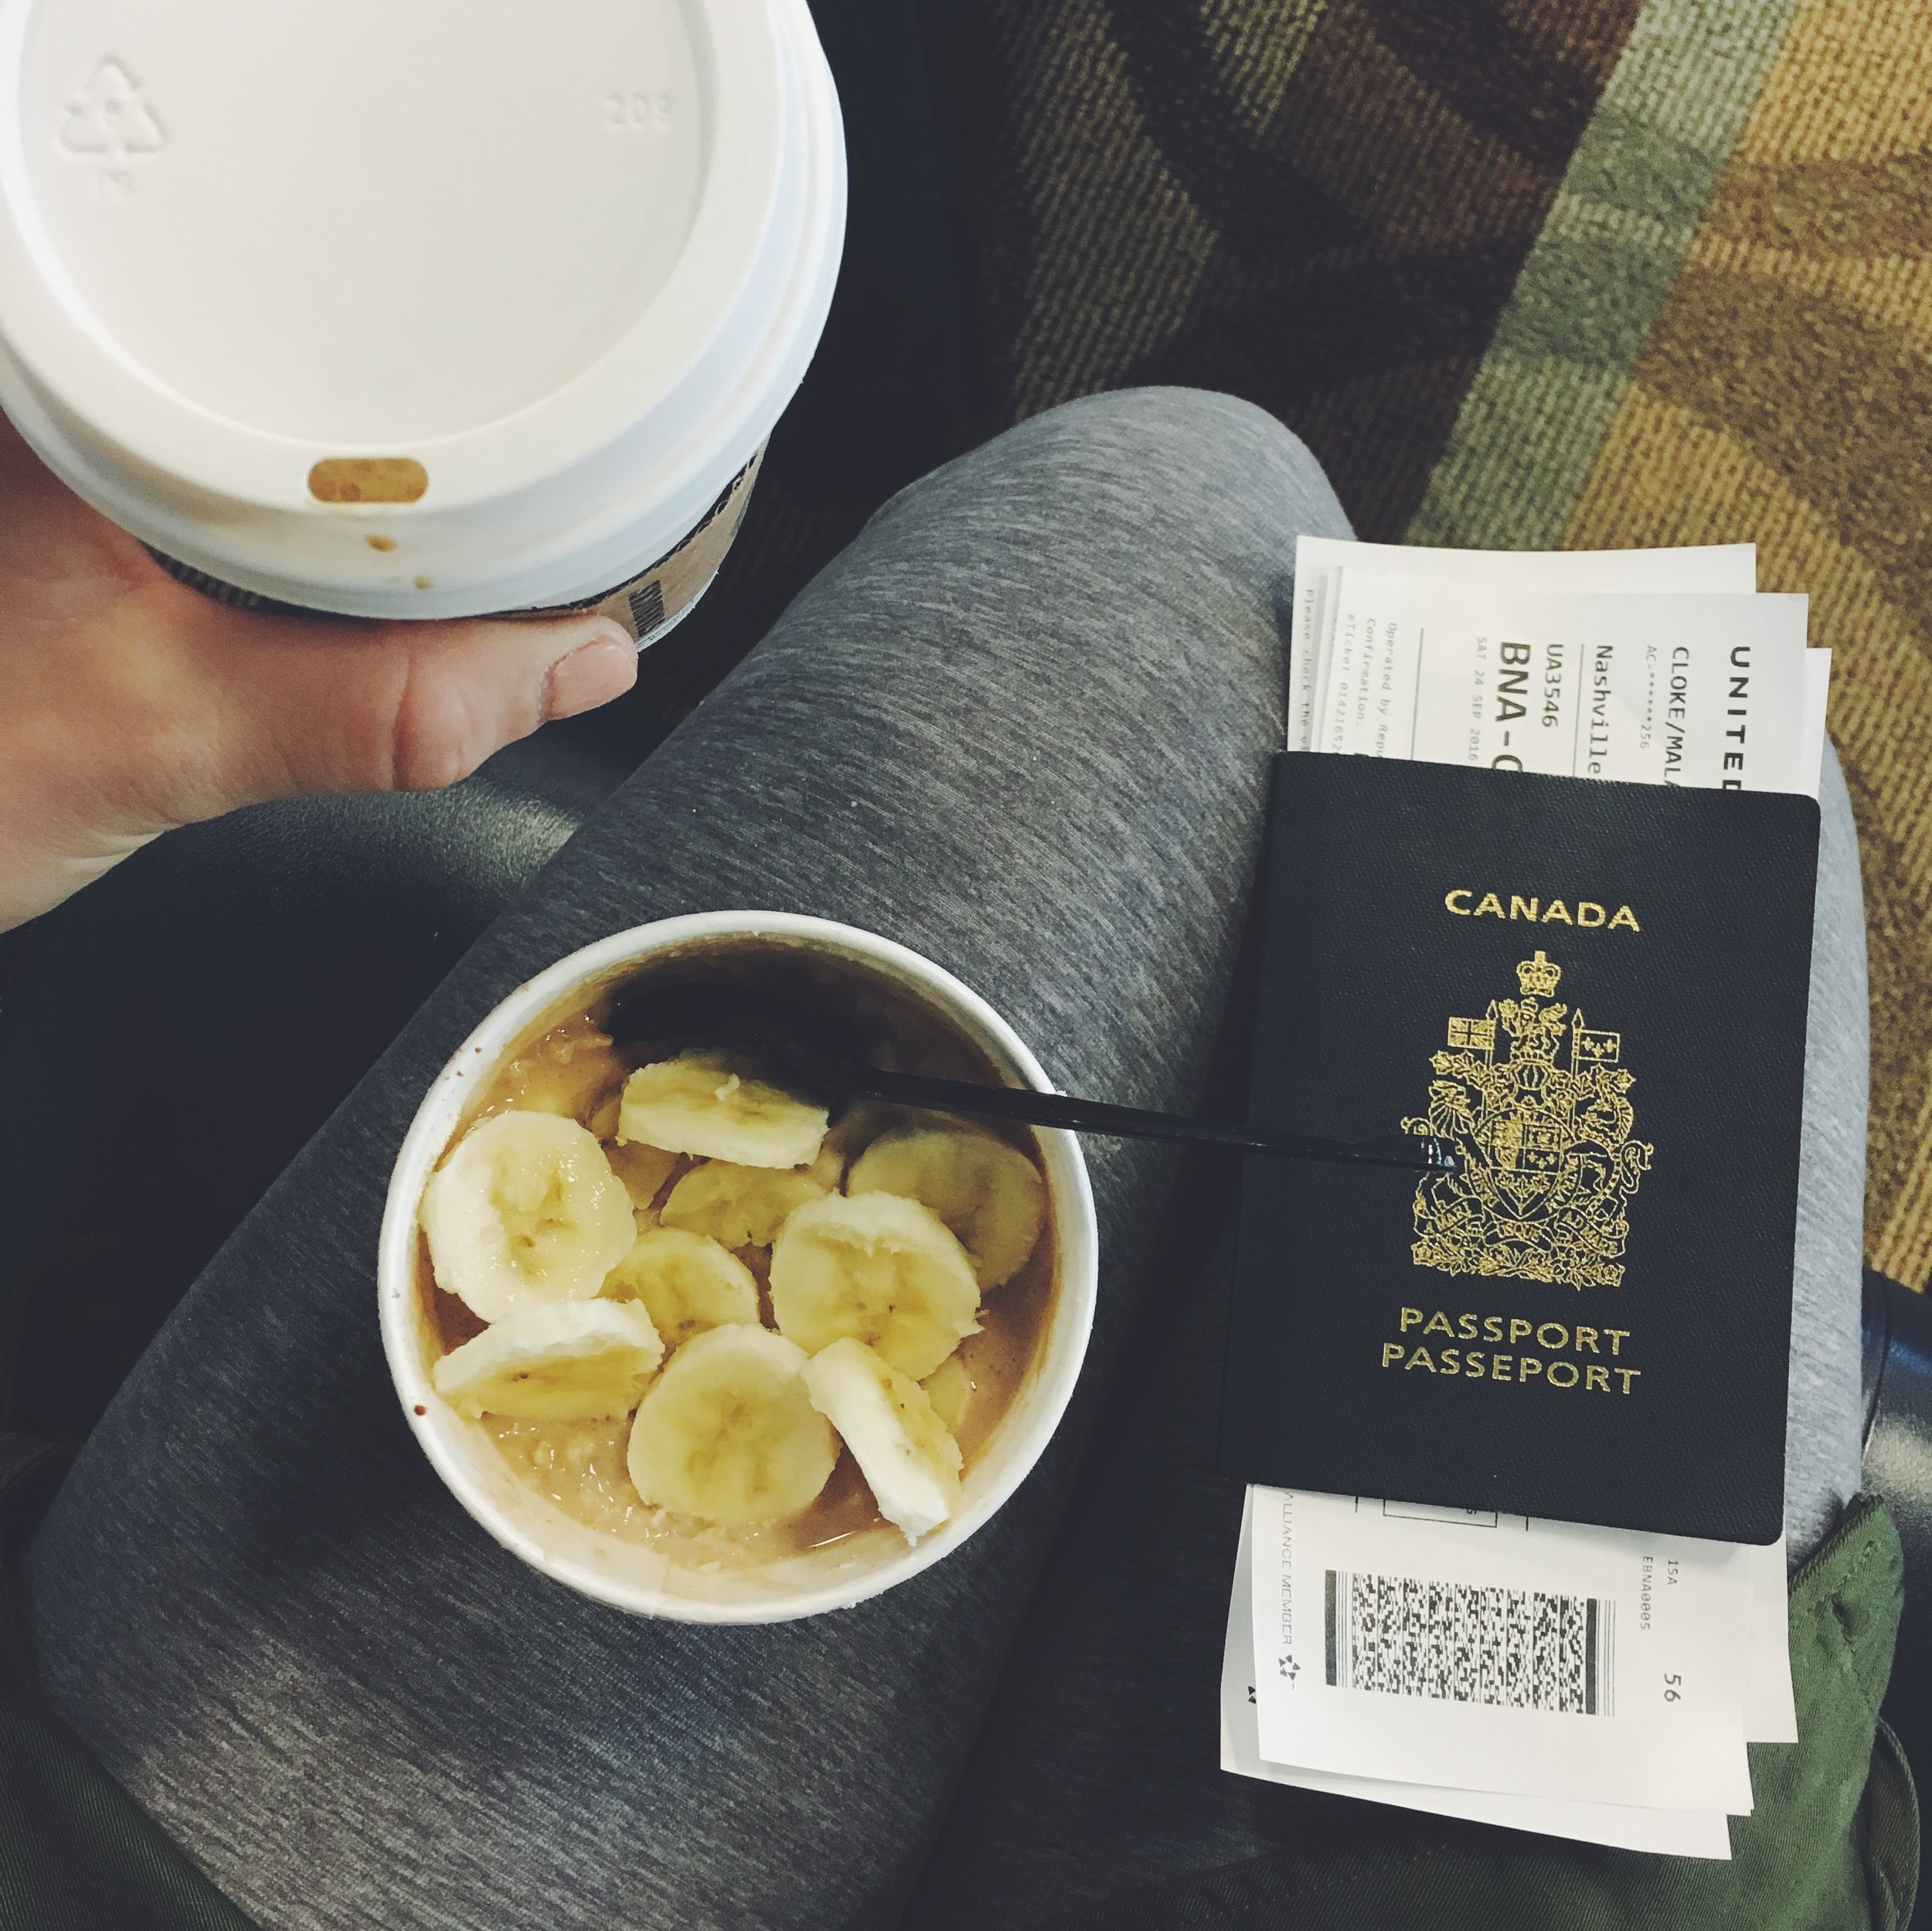 A simple airport breakfast: Starbucks oatmeal (no toppings) + banana + protein powder (bring your own) ... and a flat white.  I take pictures of my food because it helps keeps me present with what's right in front of me and sometimes I swear I enjoy food more when I actually take the time to recognize it with my camera.